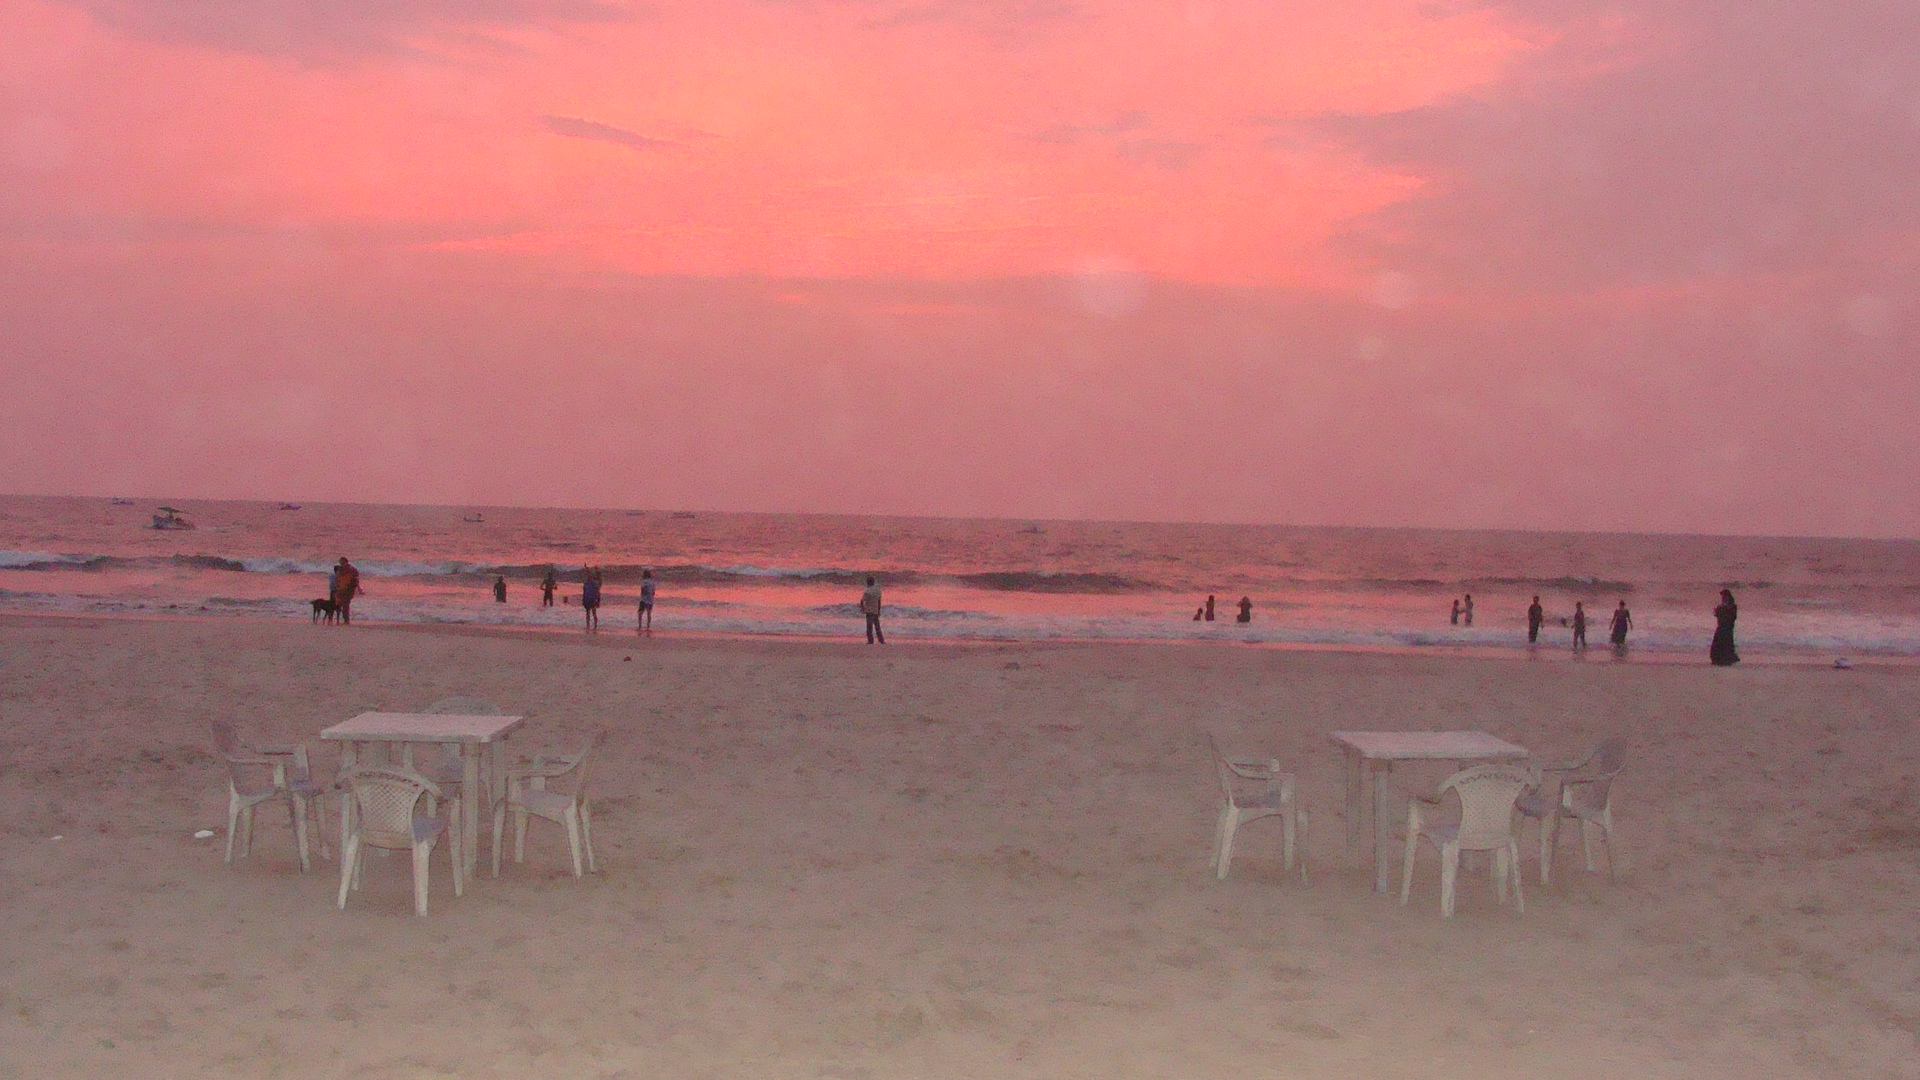 Sunset in Goa 2